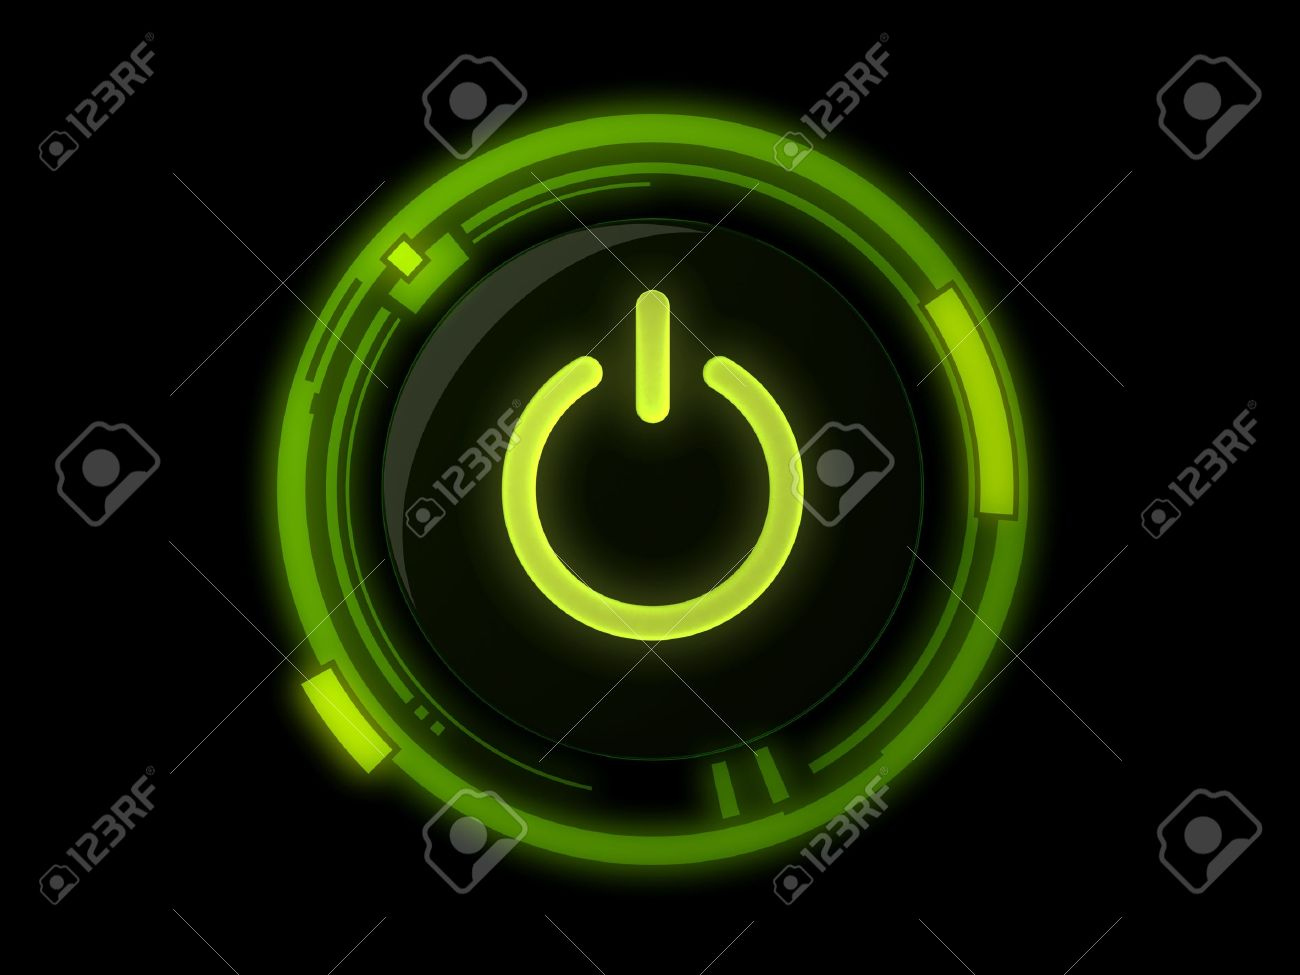 Power button on green light Stock Photo - 10569388